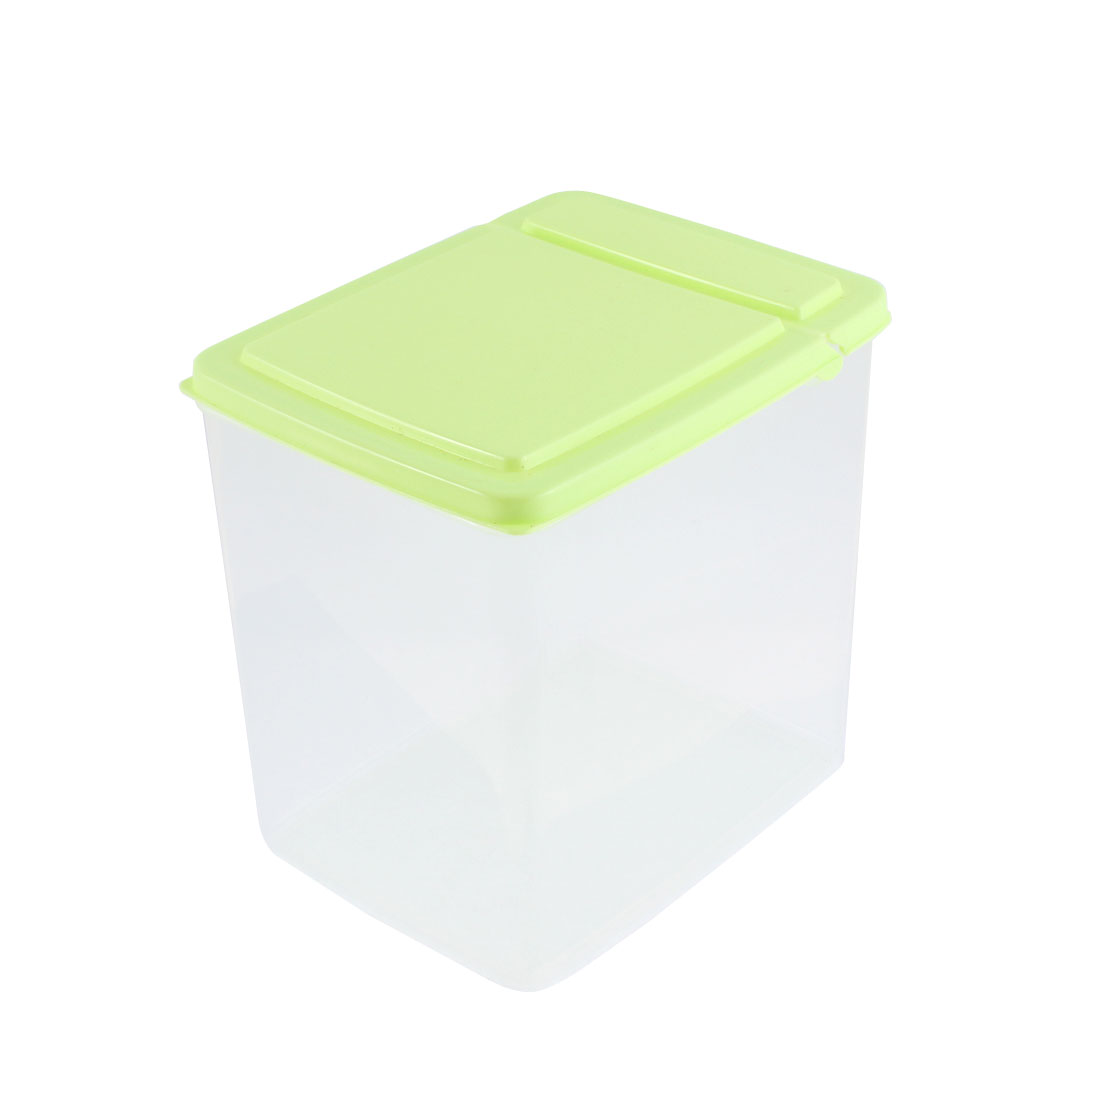 Household Plastic Food Storage Box Container 6.5 Inchx5 Inchx6.3 Inch 2.6L Green